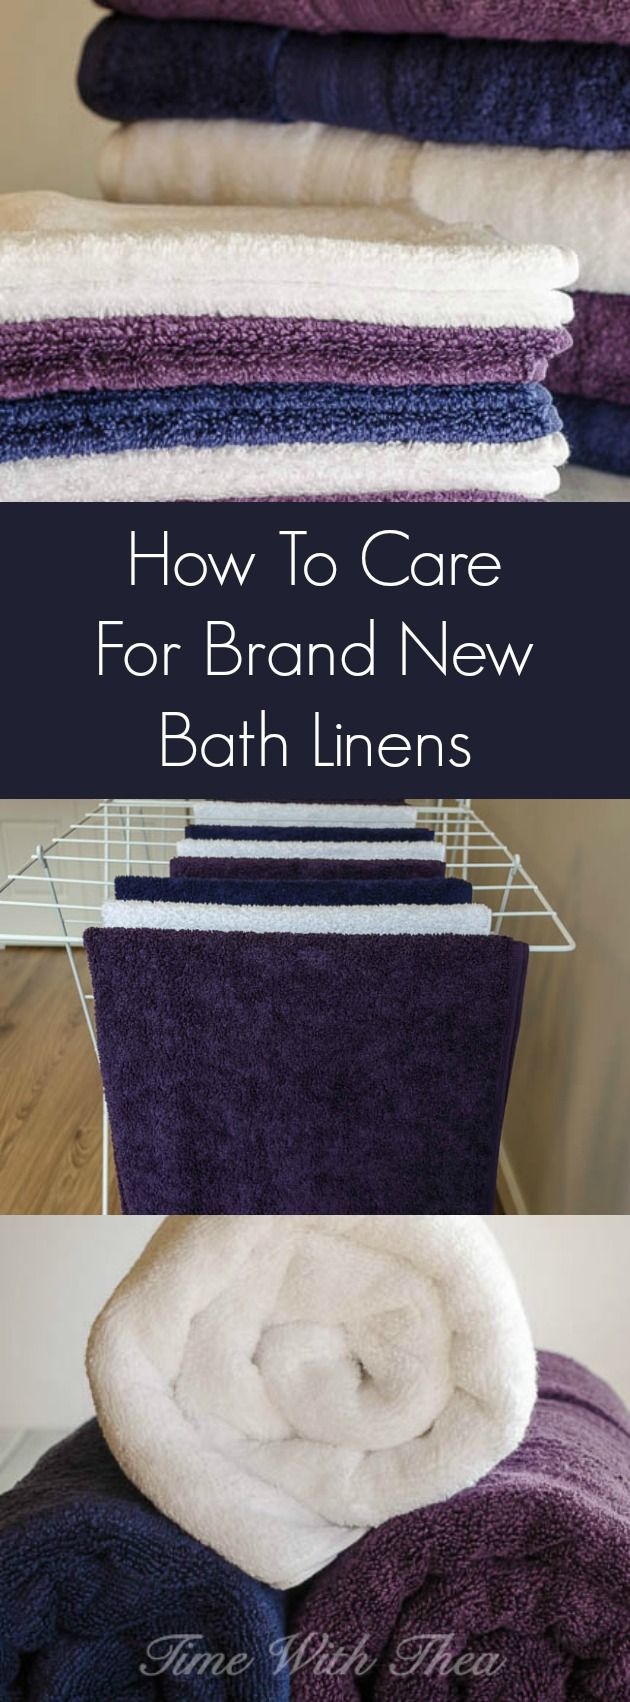 How To Care For Brand New Bath Linens. 1000  ideas about Bath Linens on Pinterest   Diy bed linen  Bed